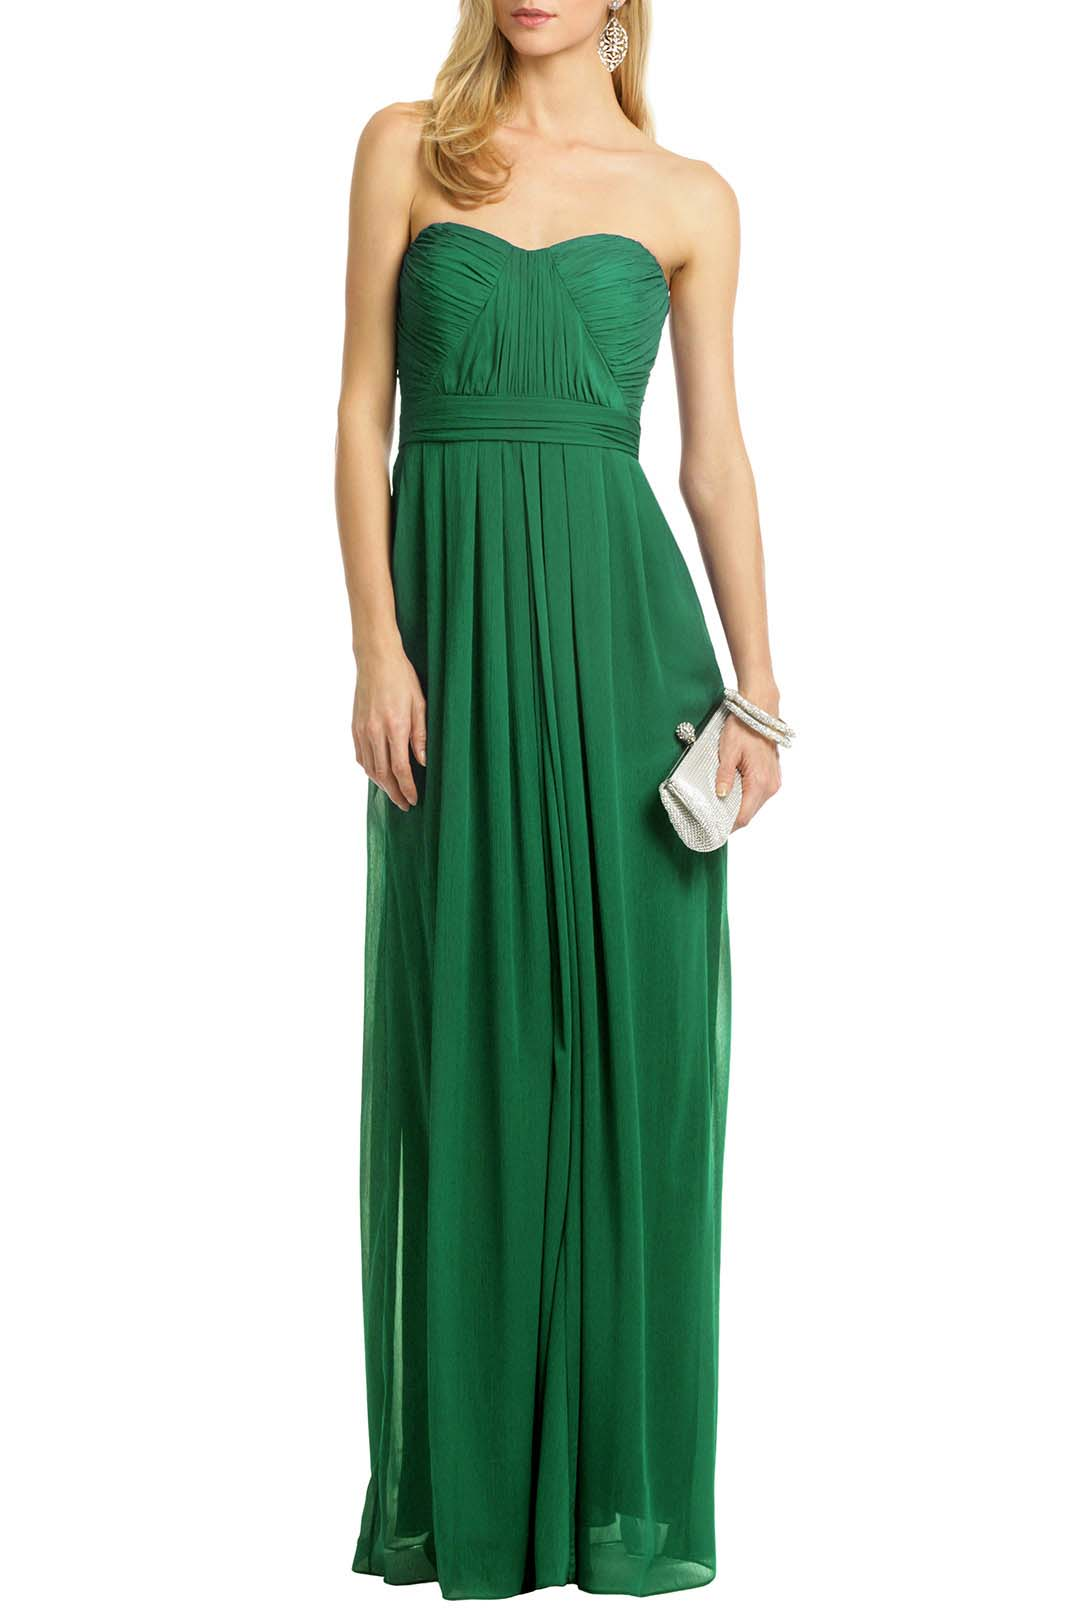 rent the runway green badgley mischka floral chiffon masquerade ball gown